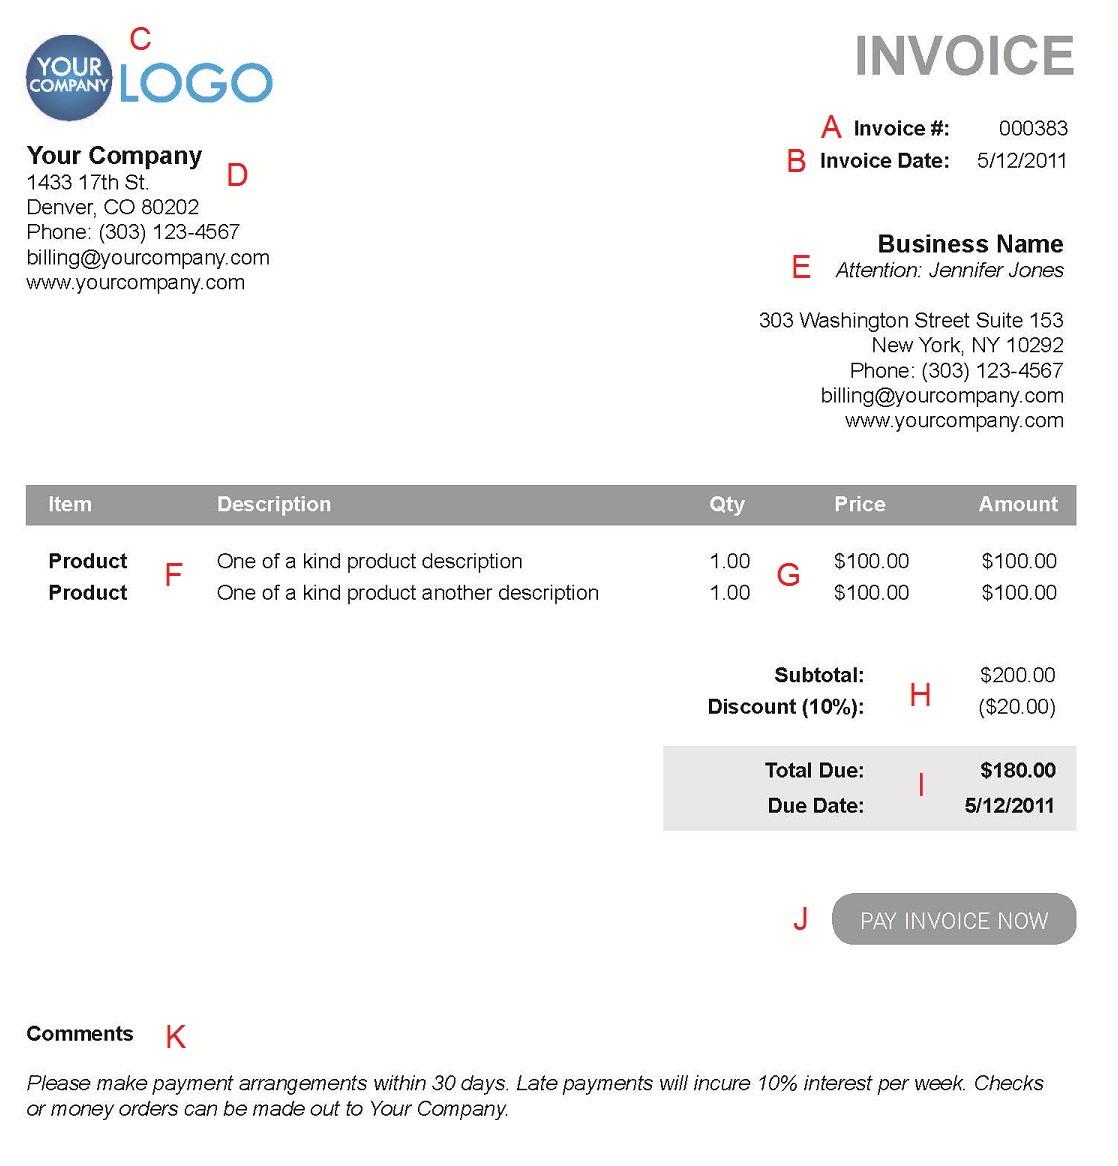 Aaaaeroincus  Personable The  Different Sections Of An Electronic Payment Invoice With Gorgeous A  With Astounding Cash Receipt Format Also American Depositary Receipt Adr In Addition Cooking Receipt And Electronic Receipt Scanner As Well As Green Card Receipt Additionally Best Iphone Receipt App From Paysimplecom With Aaaaeroincus  Gorgeous The  Different Sections Of An Electronic Payment Invoice With Astounding A  And Personable Cash Receipt Format Also American Depositary Receipt Adr In Addition Cooking Receipt From Paysimplecom